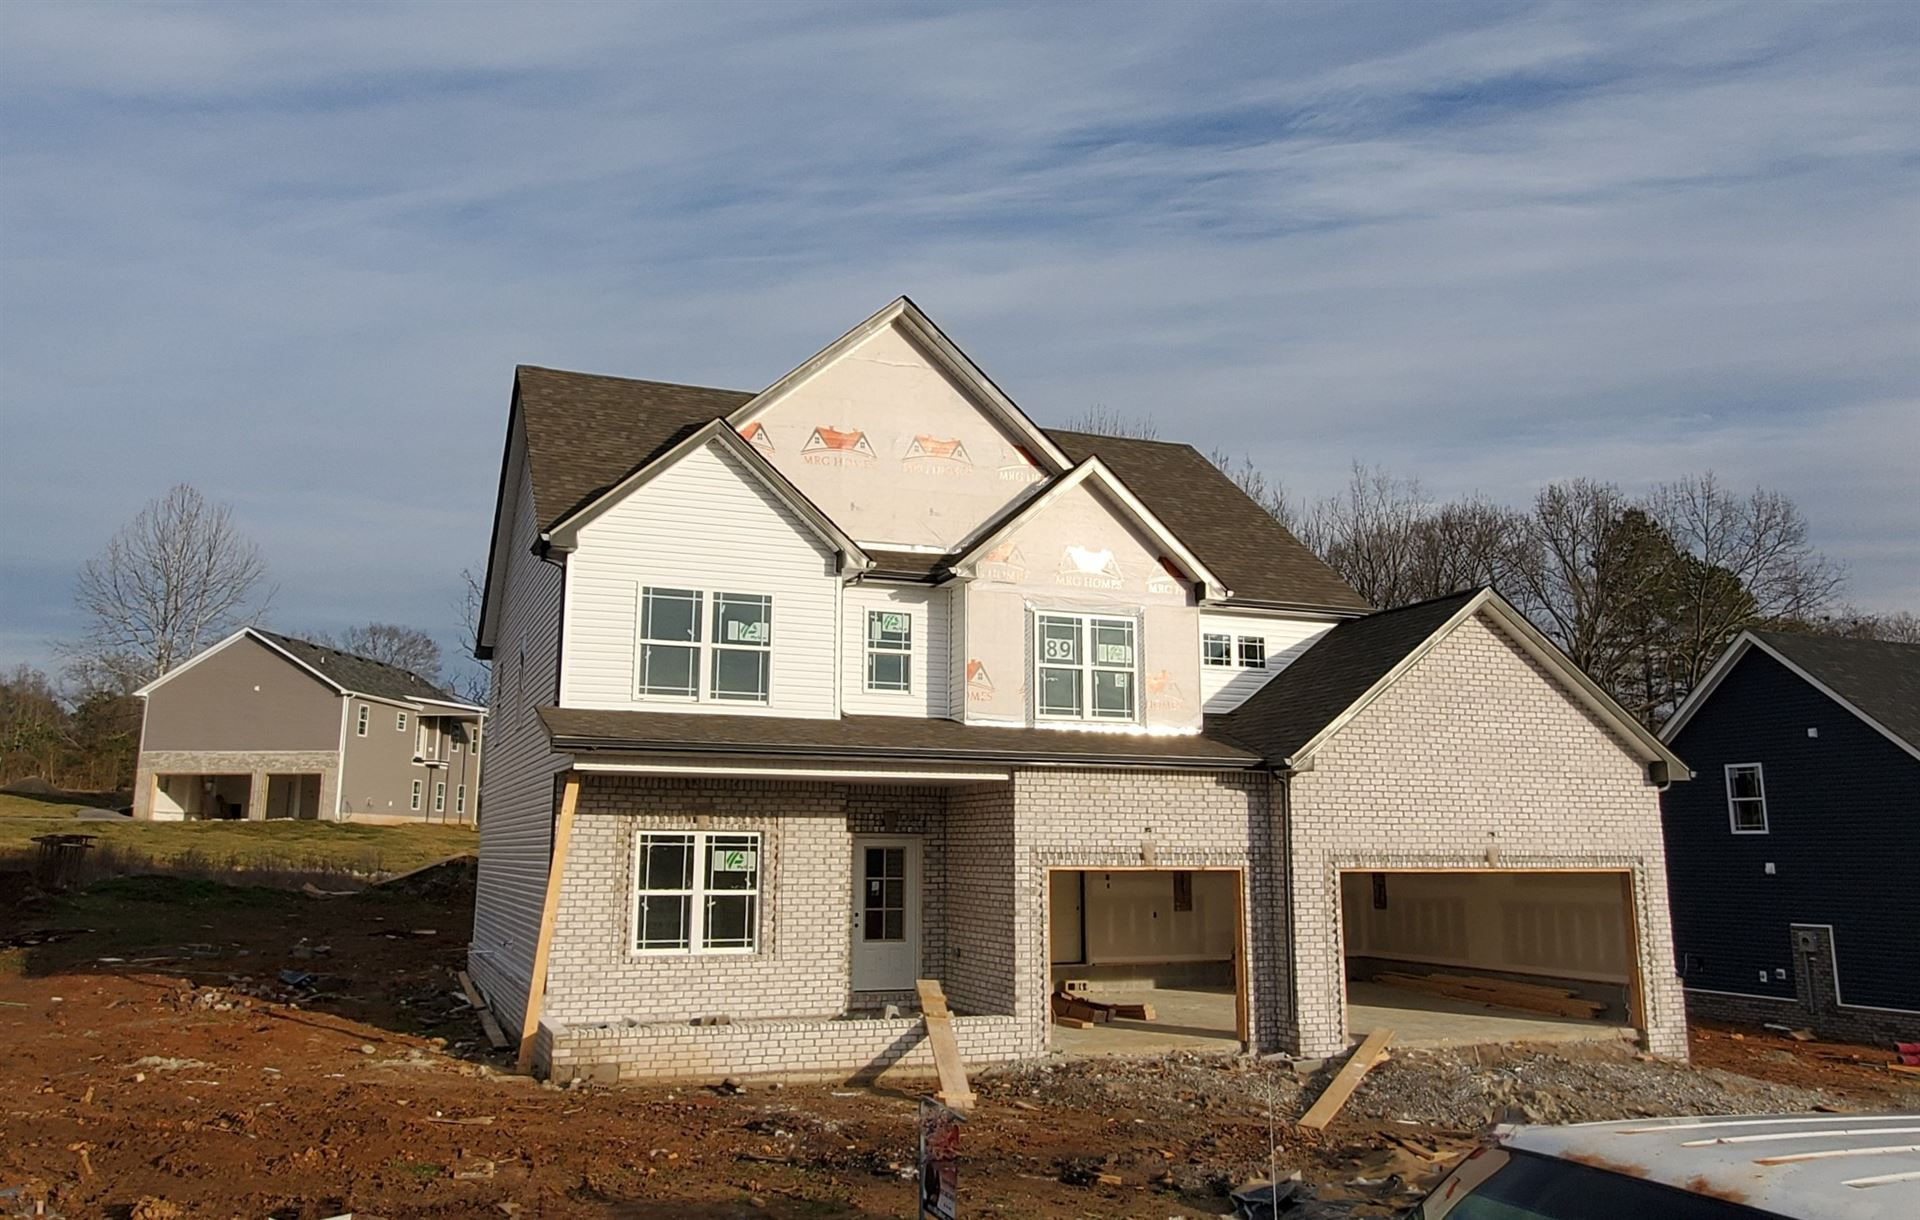 89 River Chase, Clarksville, TN 37043 - MLS#: 2208863